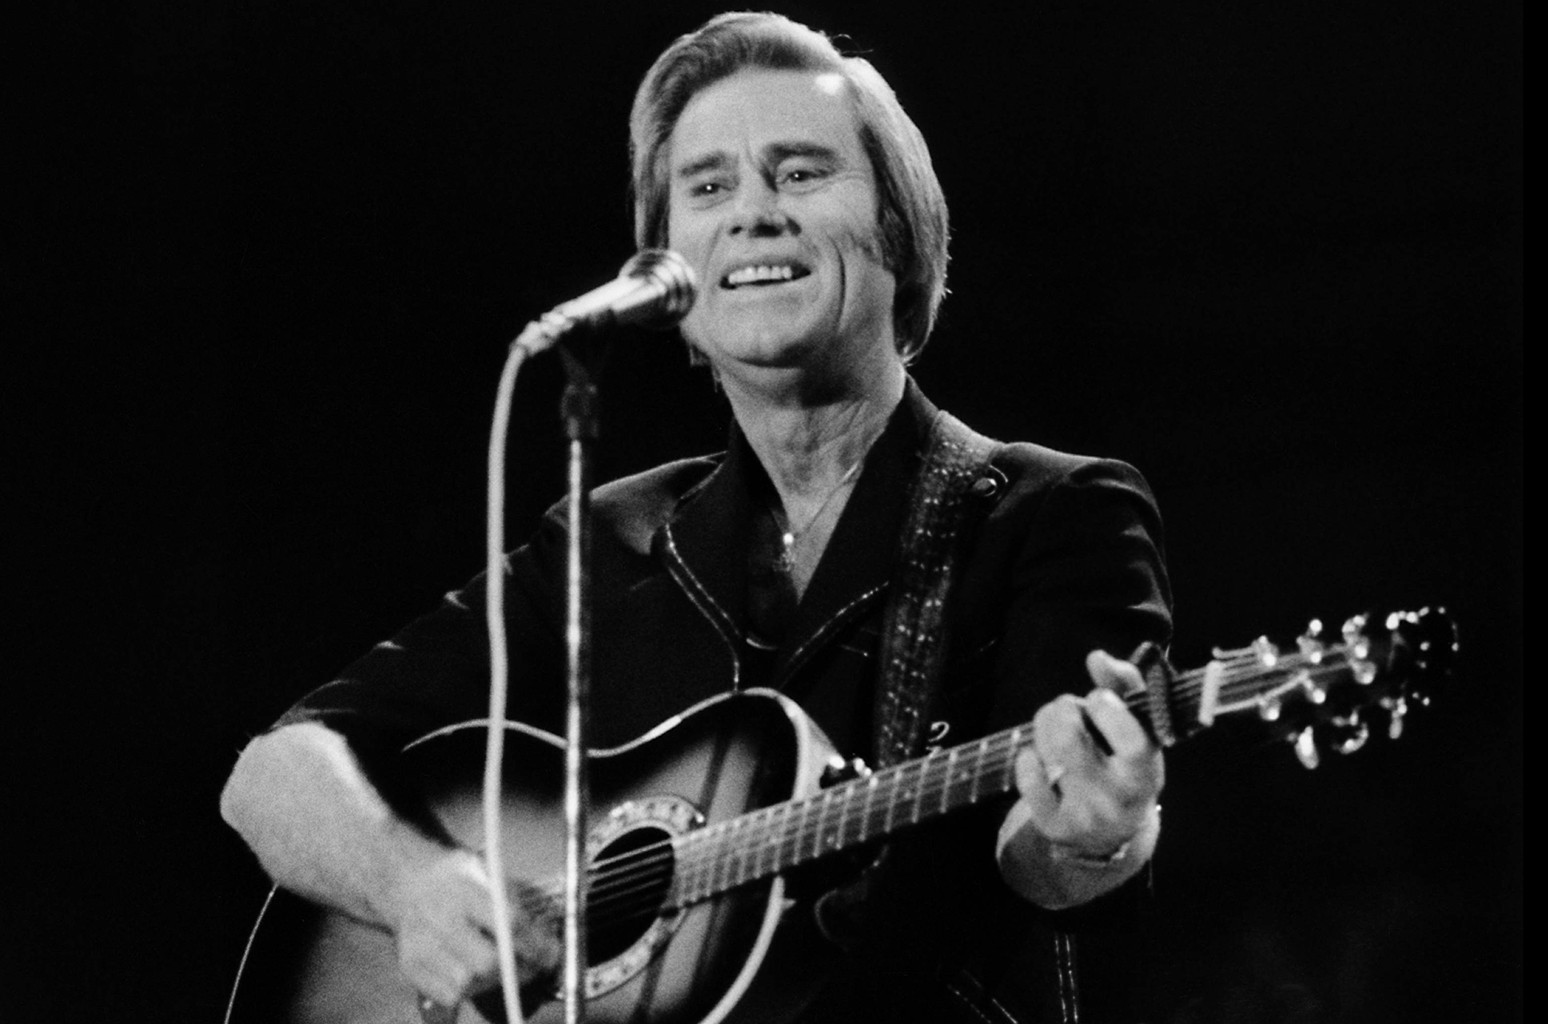 George Jones performs live on stage at the Country Music Festival at the Wembley Arena in London in April 1981.